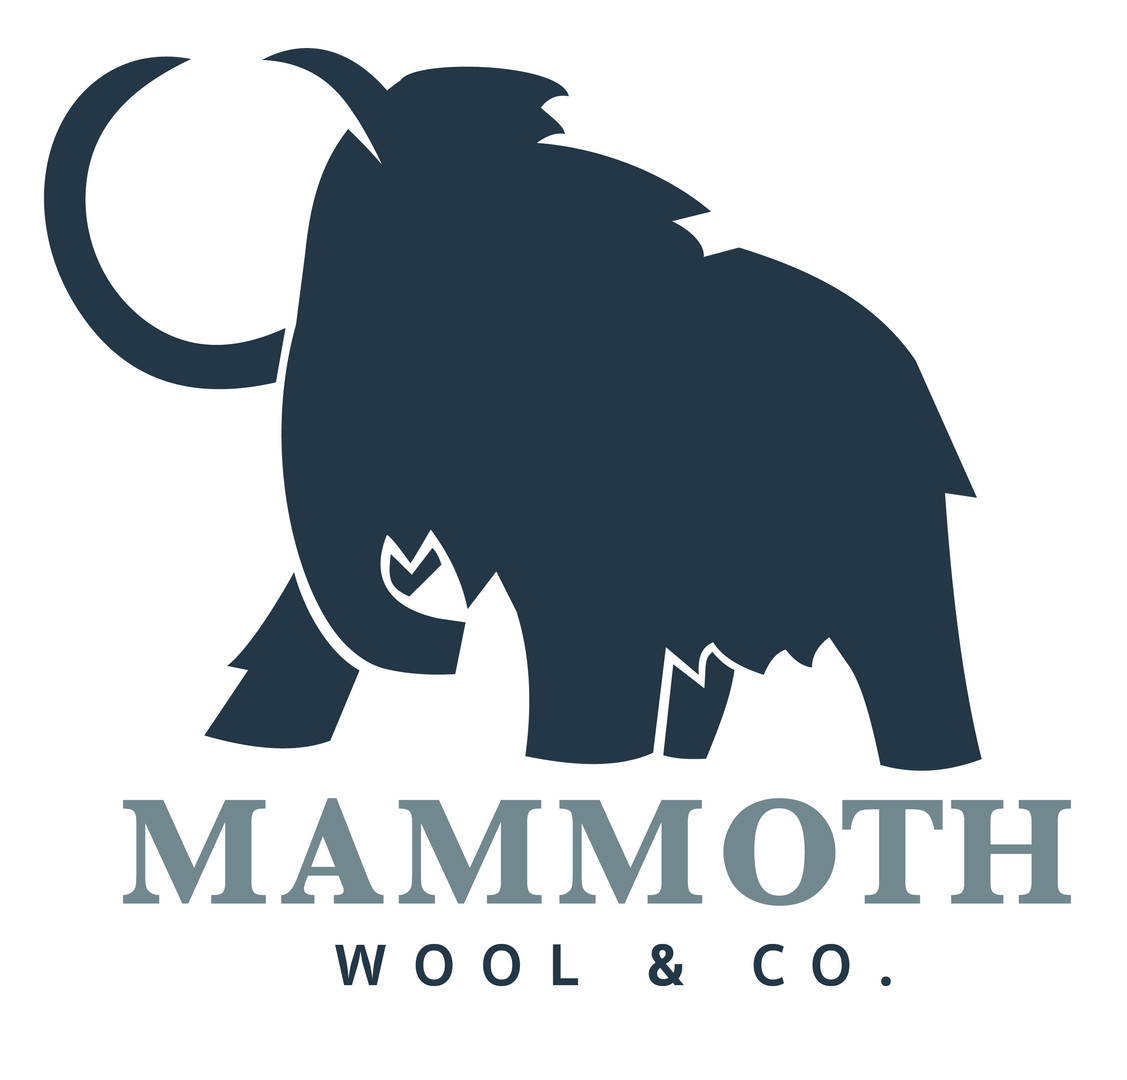 Mammoth Wool & Co.